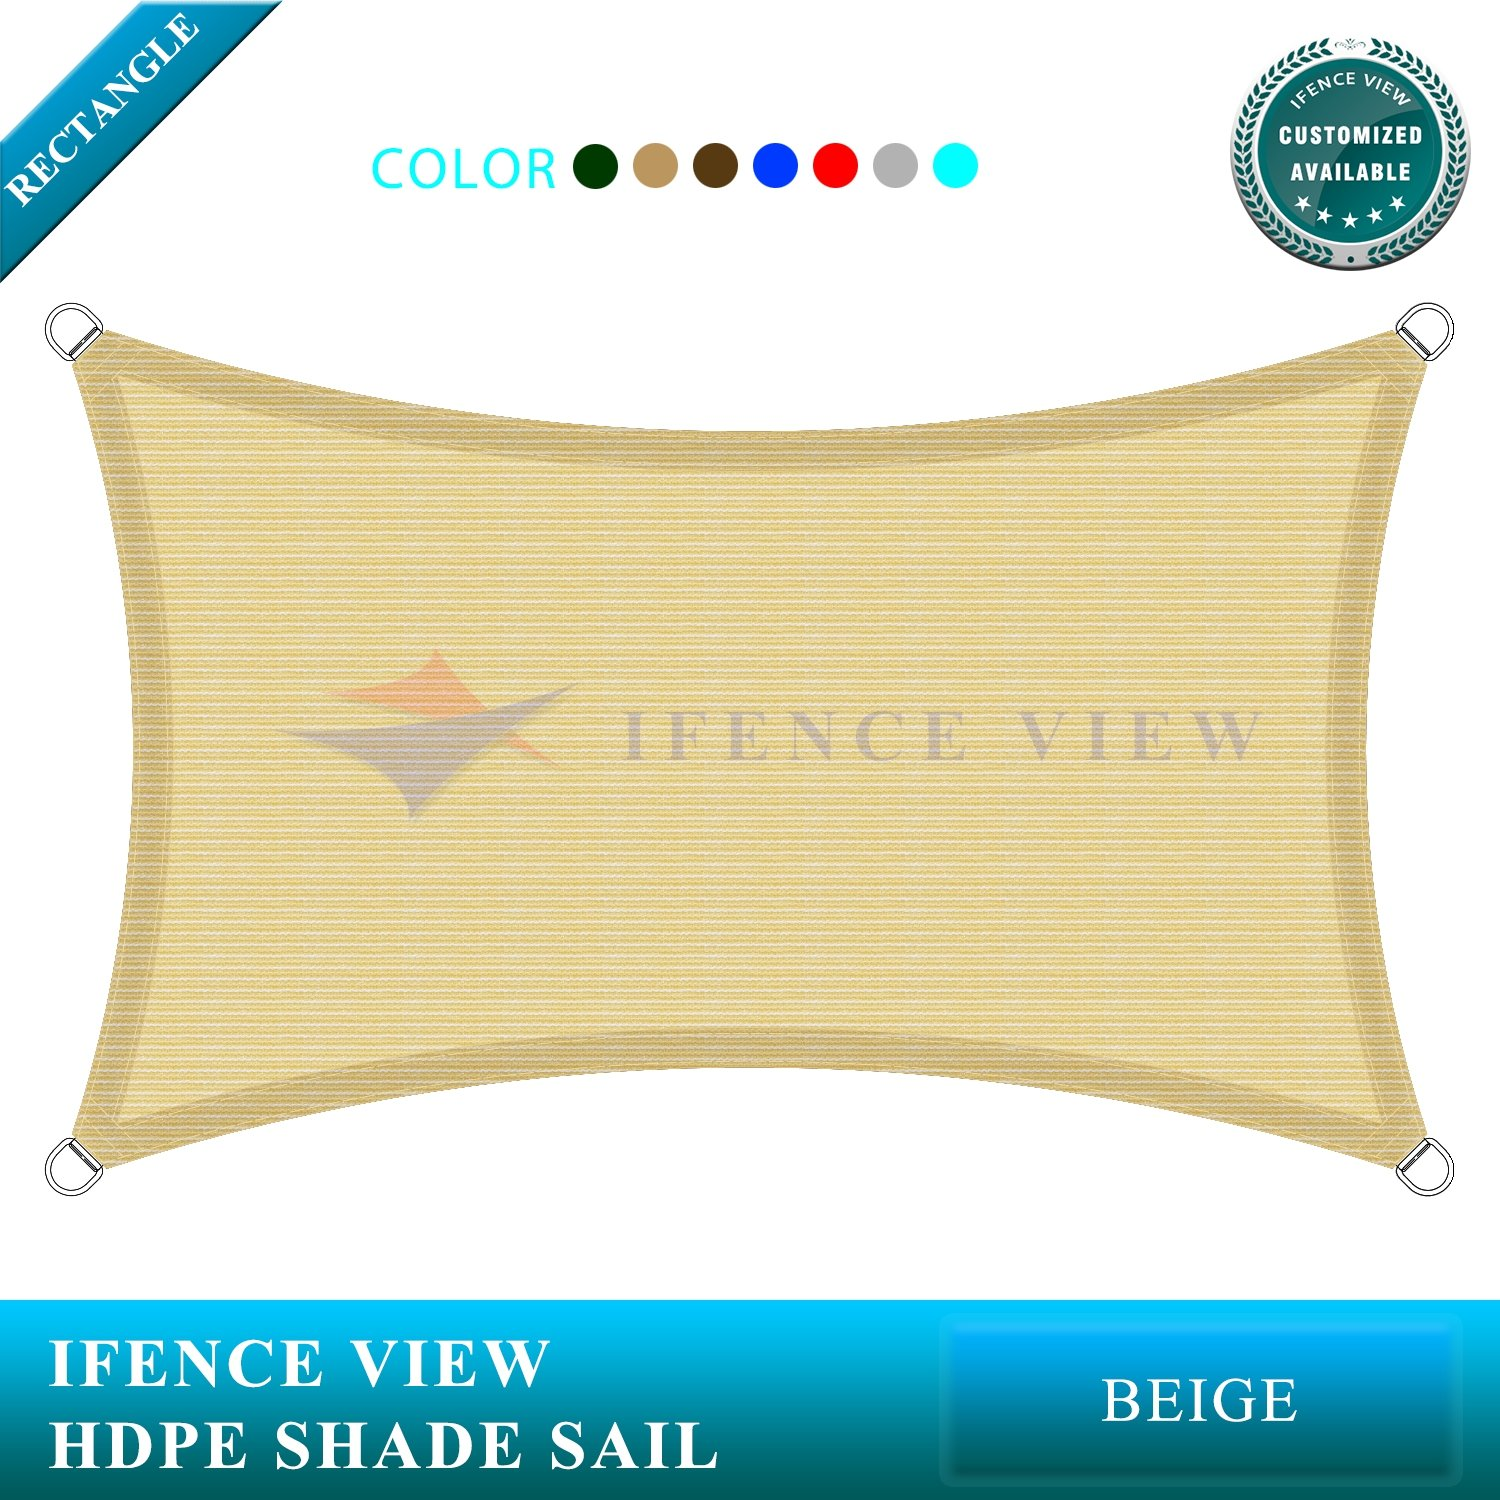 Ifenceview 7 x7 -7 x24 Rectangle UV Blocking Sun Shade Sail Canopy Awning for Patio Yard Garden Driveway Outdoor Facility 7 x 23 , Beige